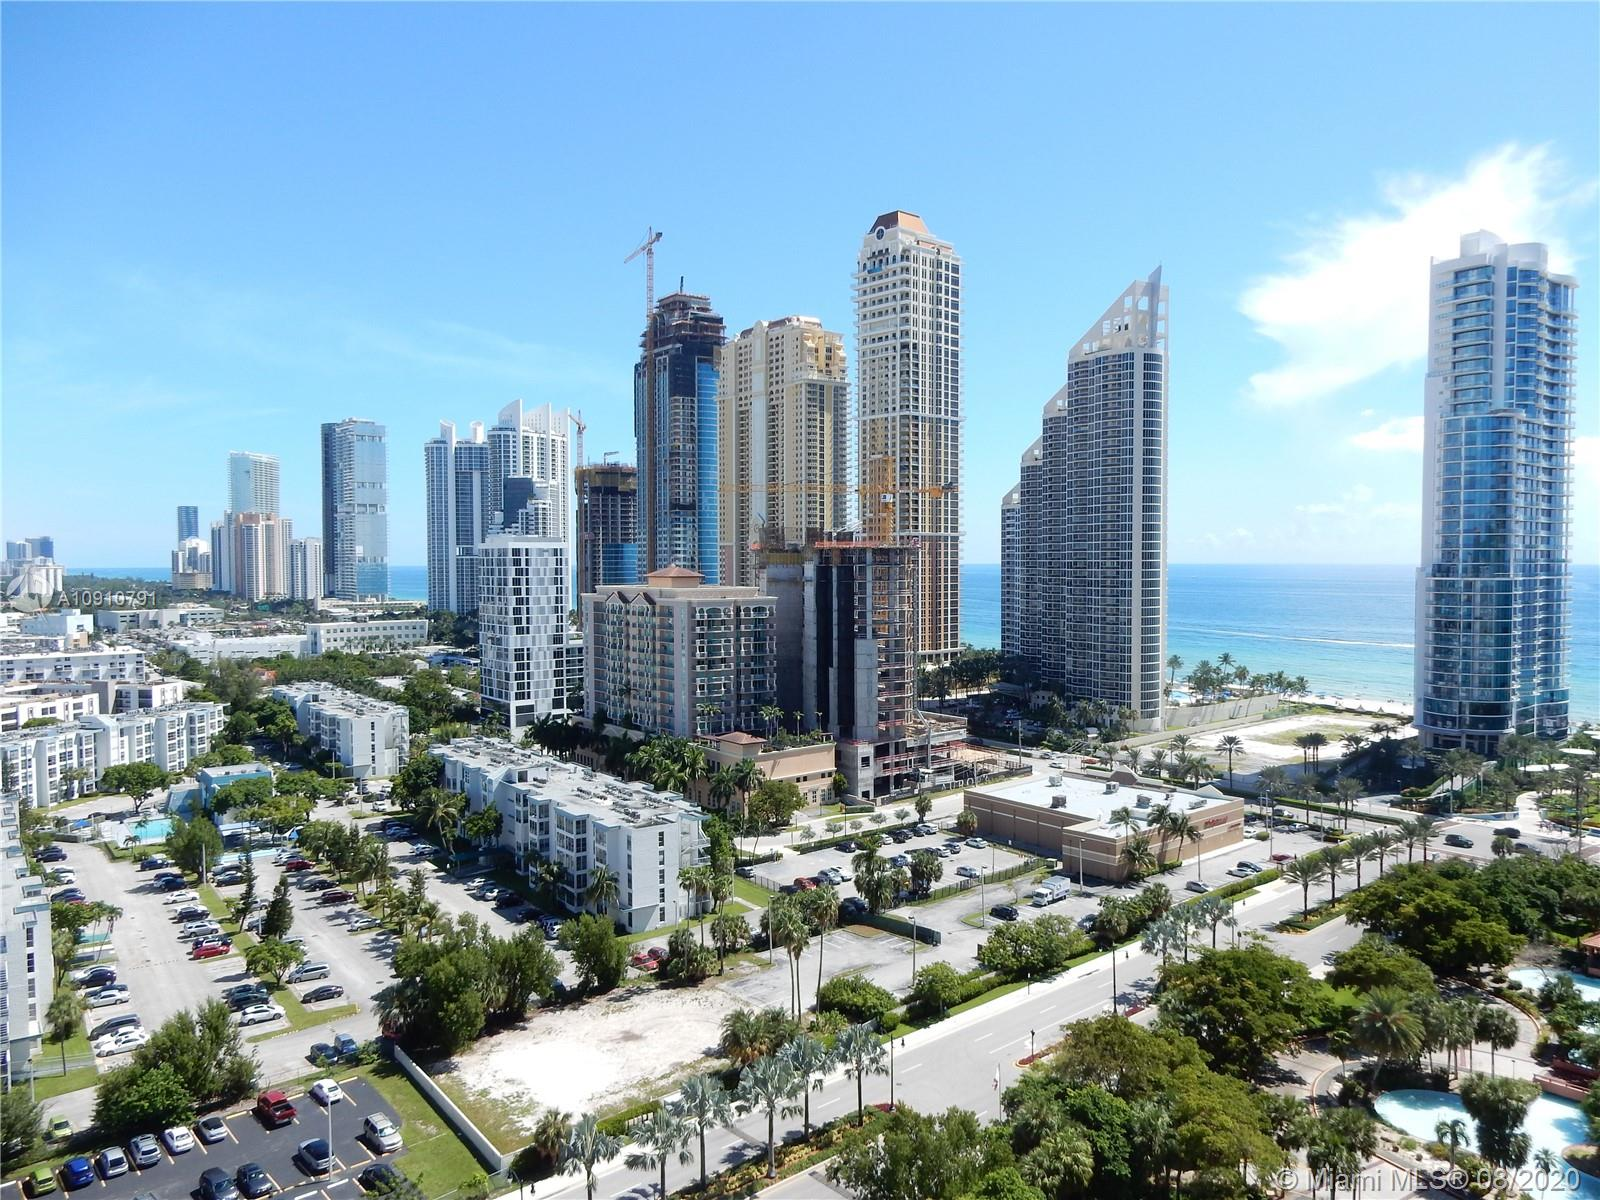 Winston Tower 300 #2204 - 230 174th St #2204, Sunny Isles Beach, FL 33160